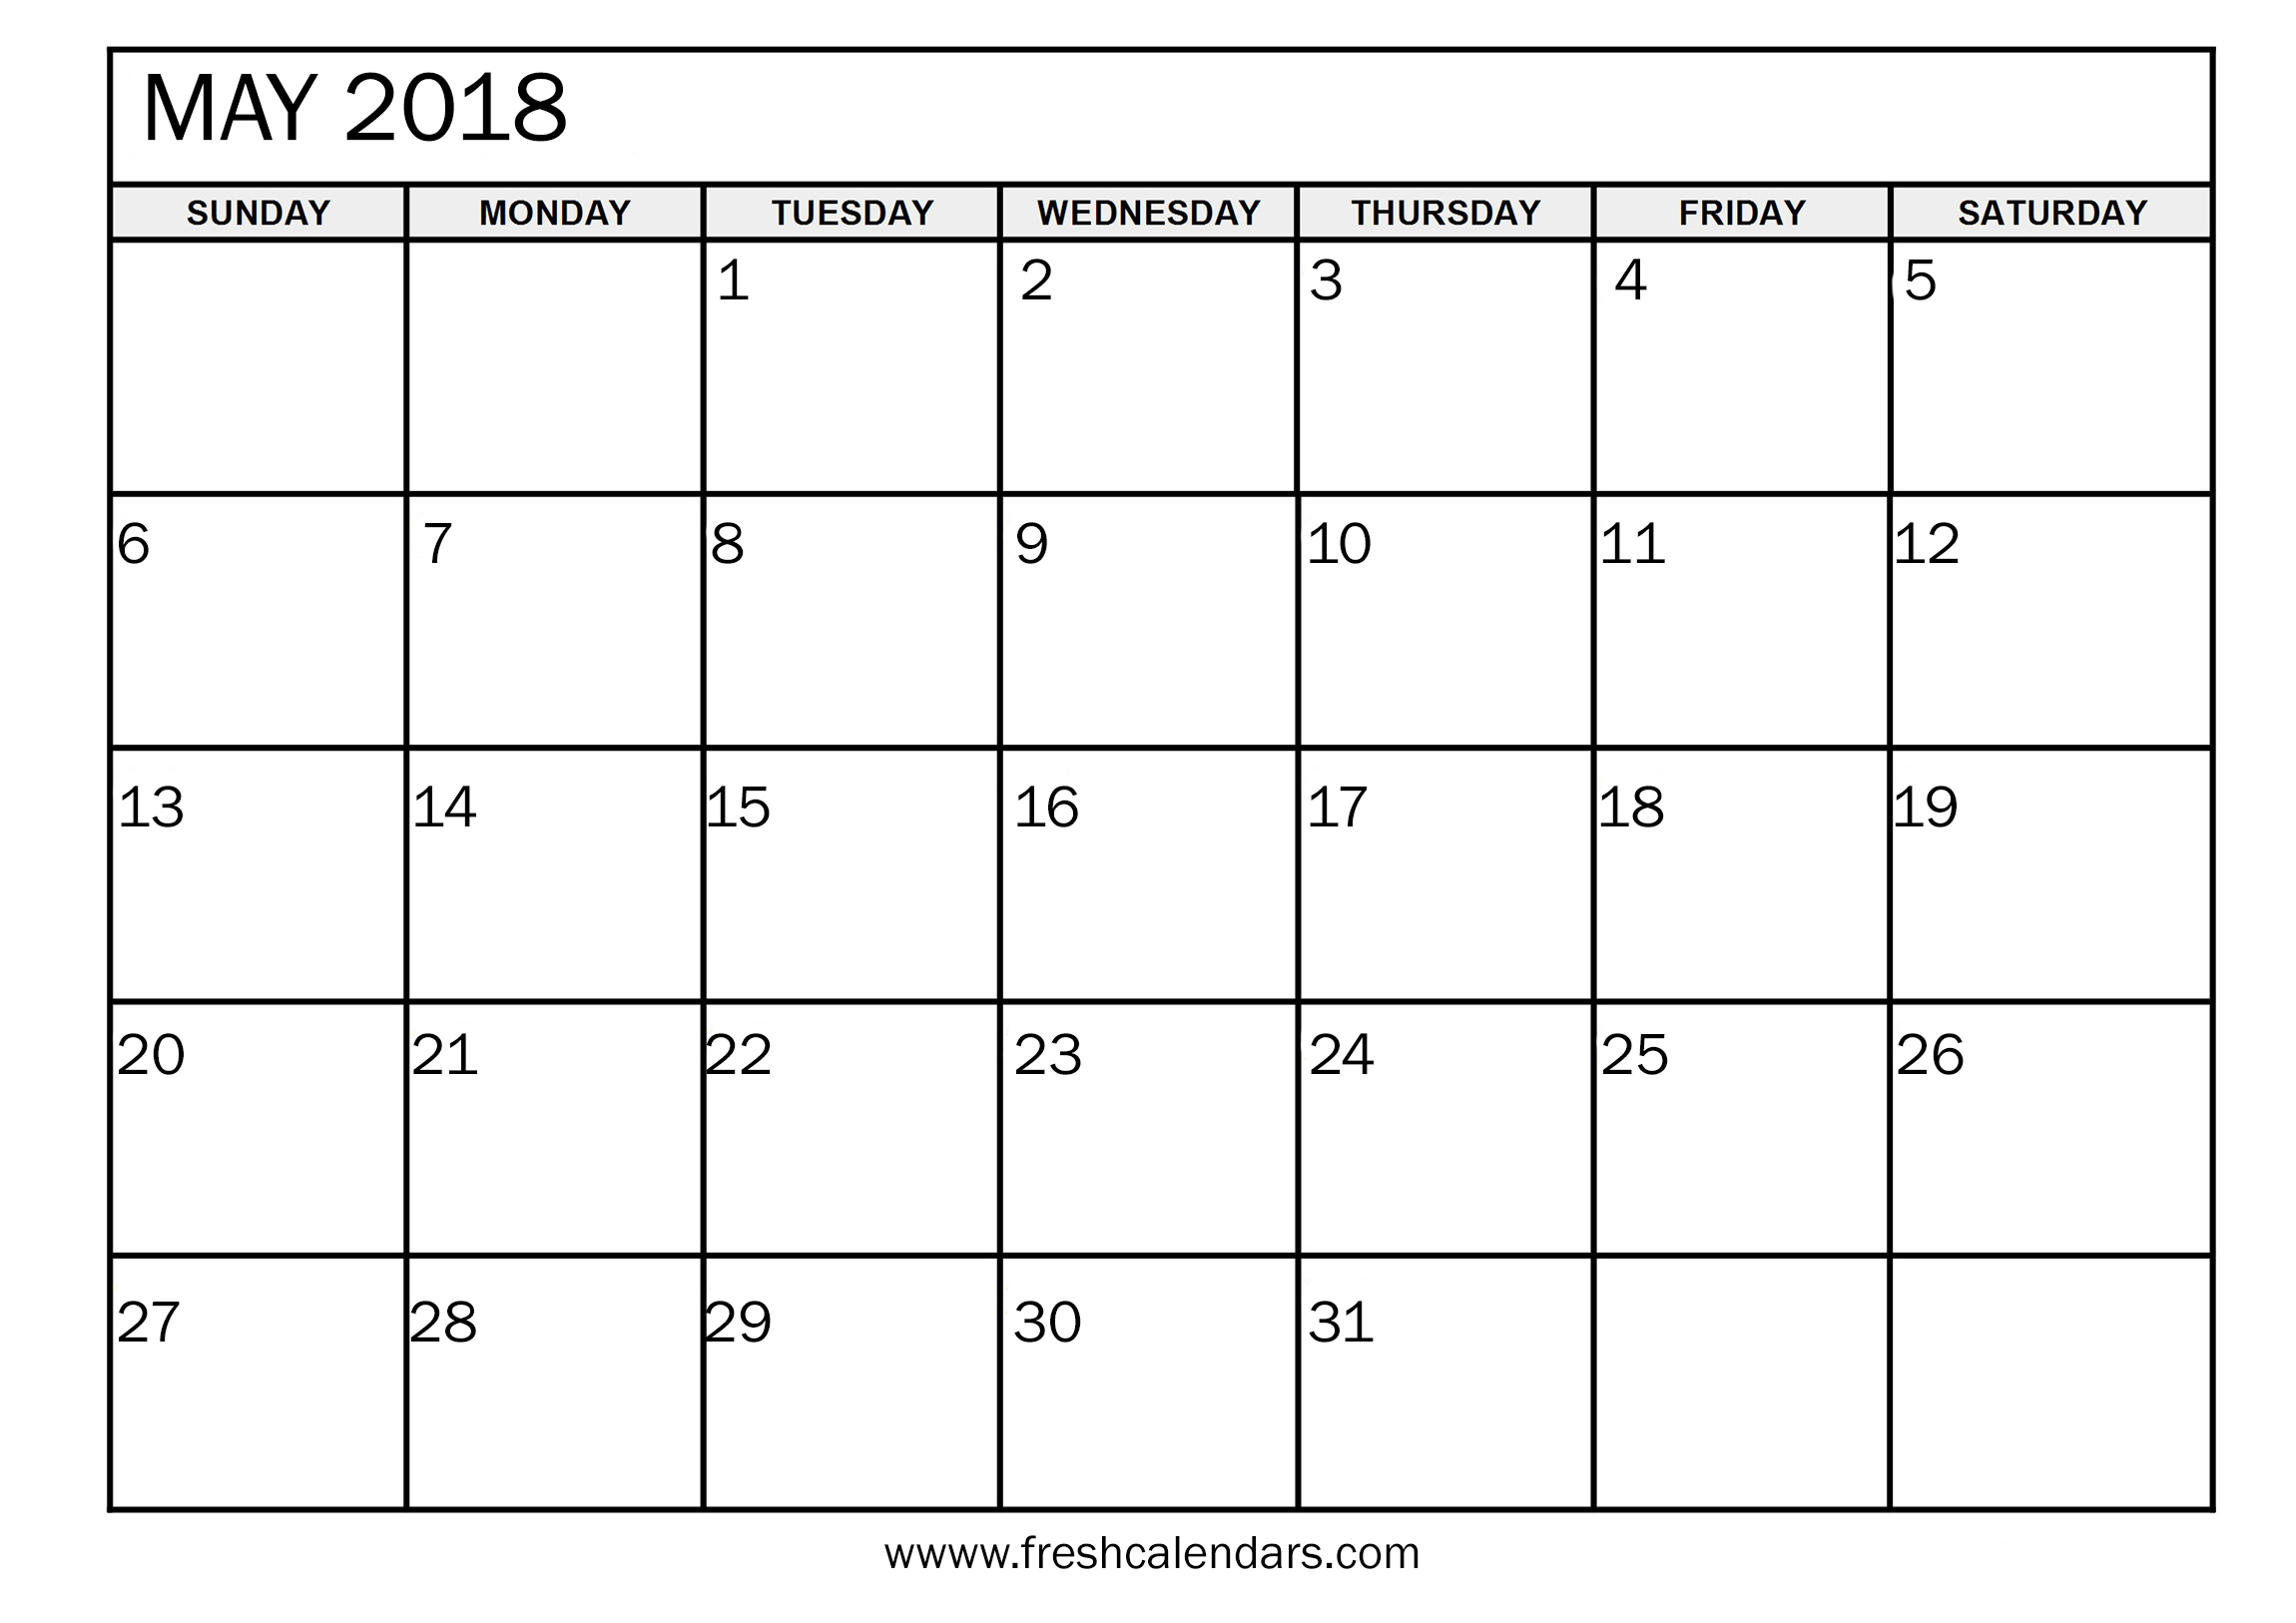 May 2018 Calendar Printable | FreshCalendars.com